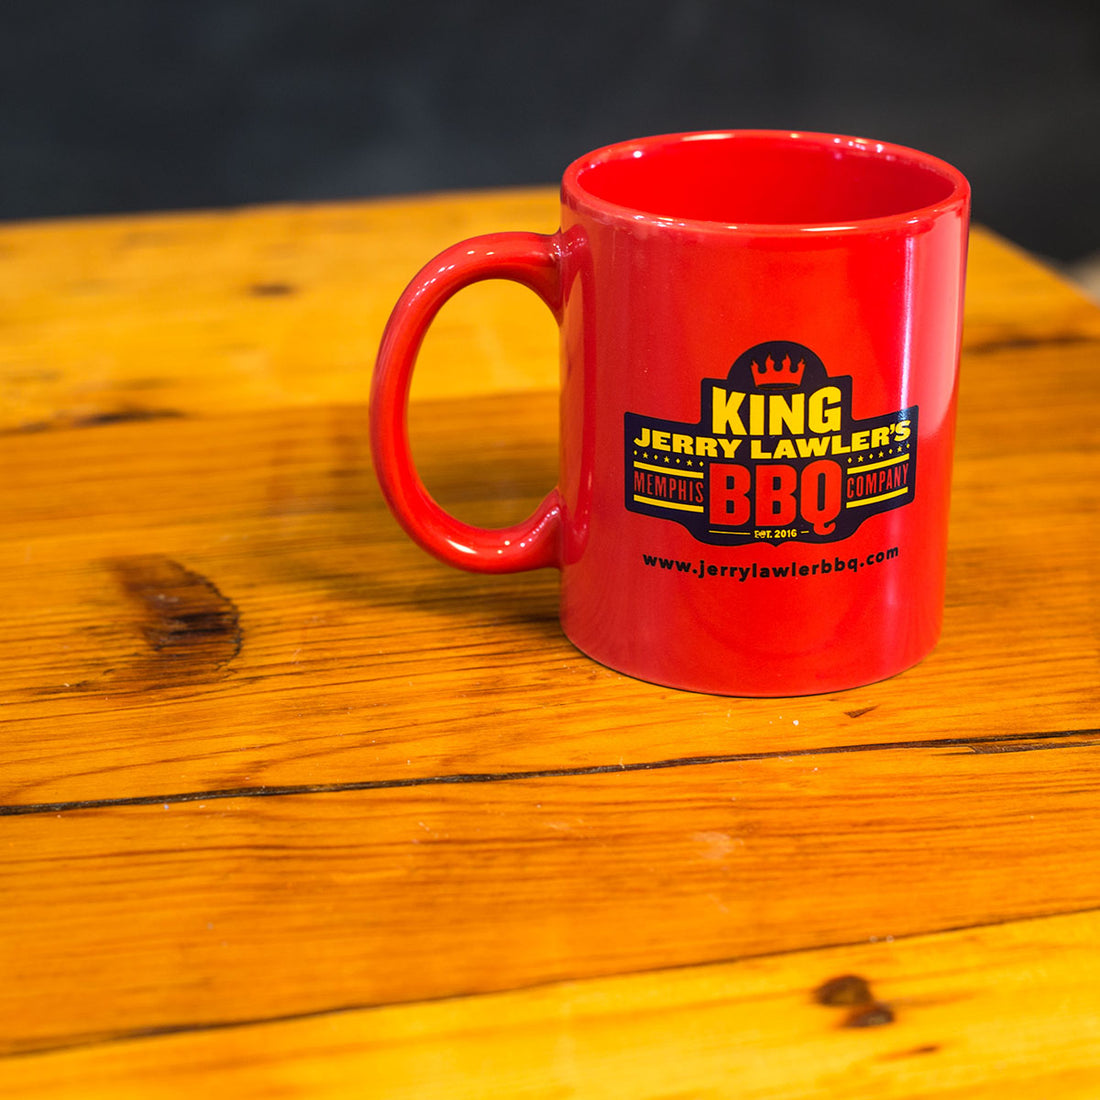 The Royal Mug